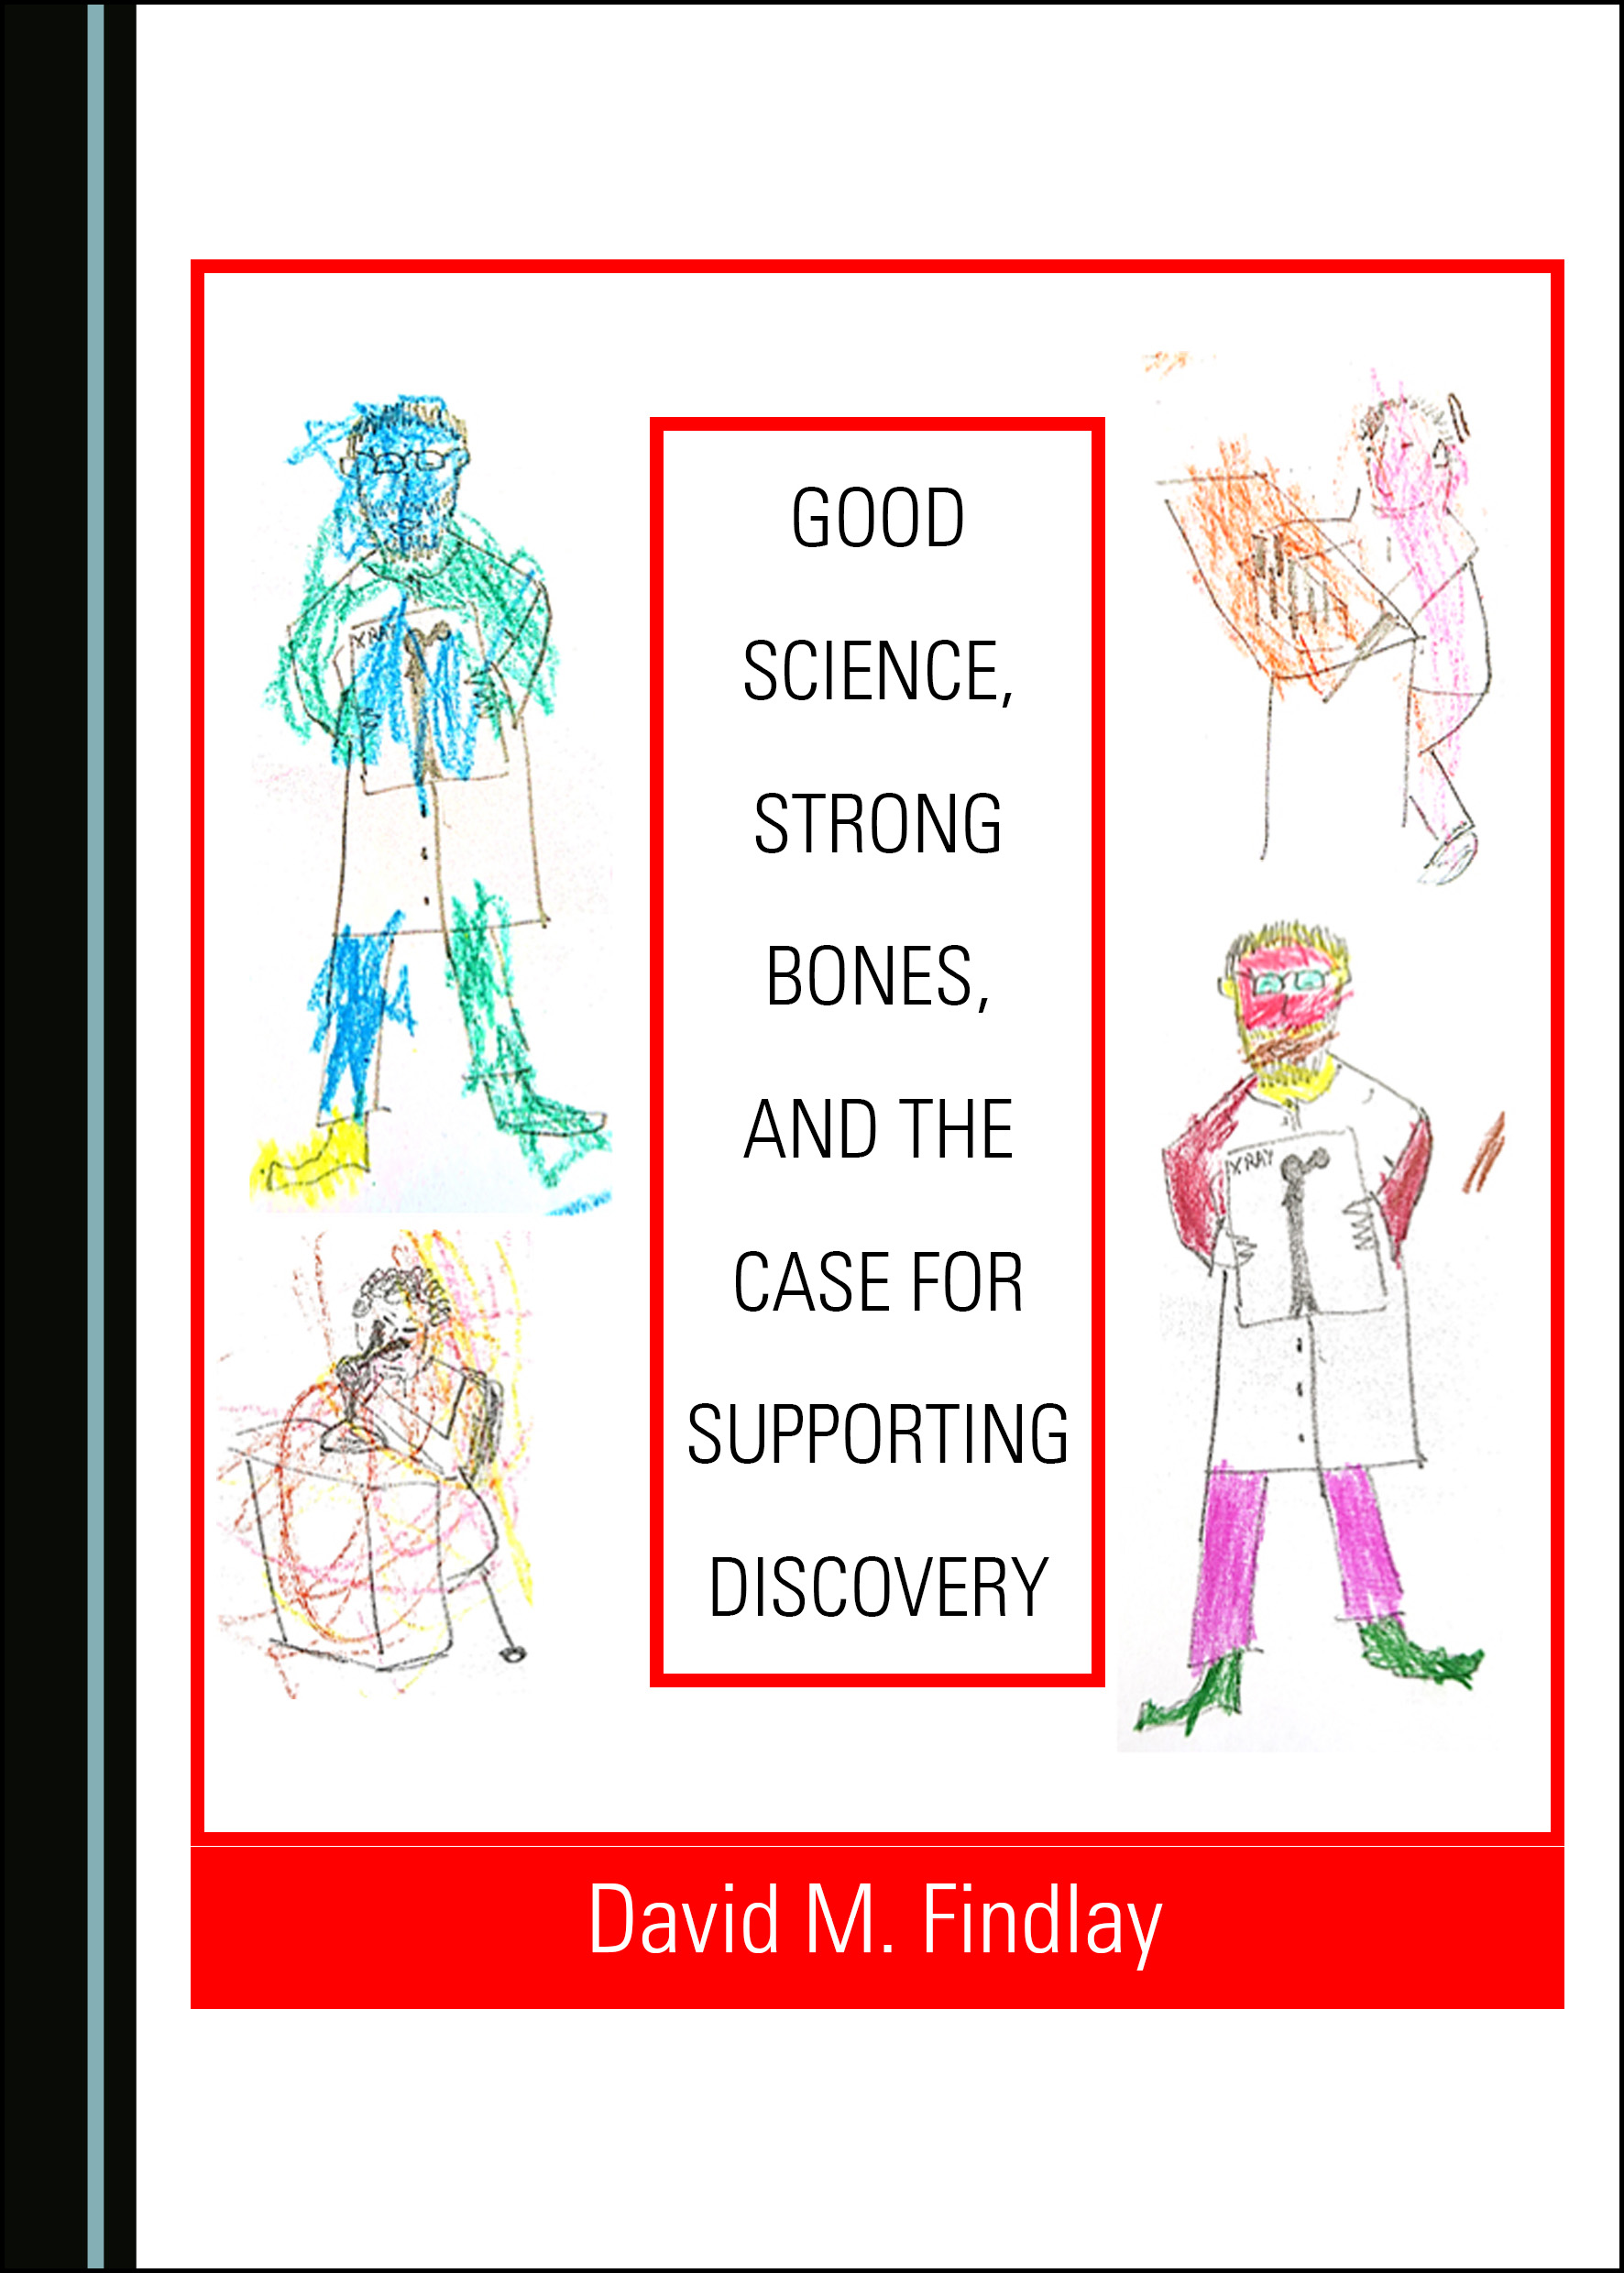 Good Science, Strong Bones, and the Case for Supporting Discovery